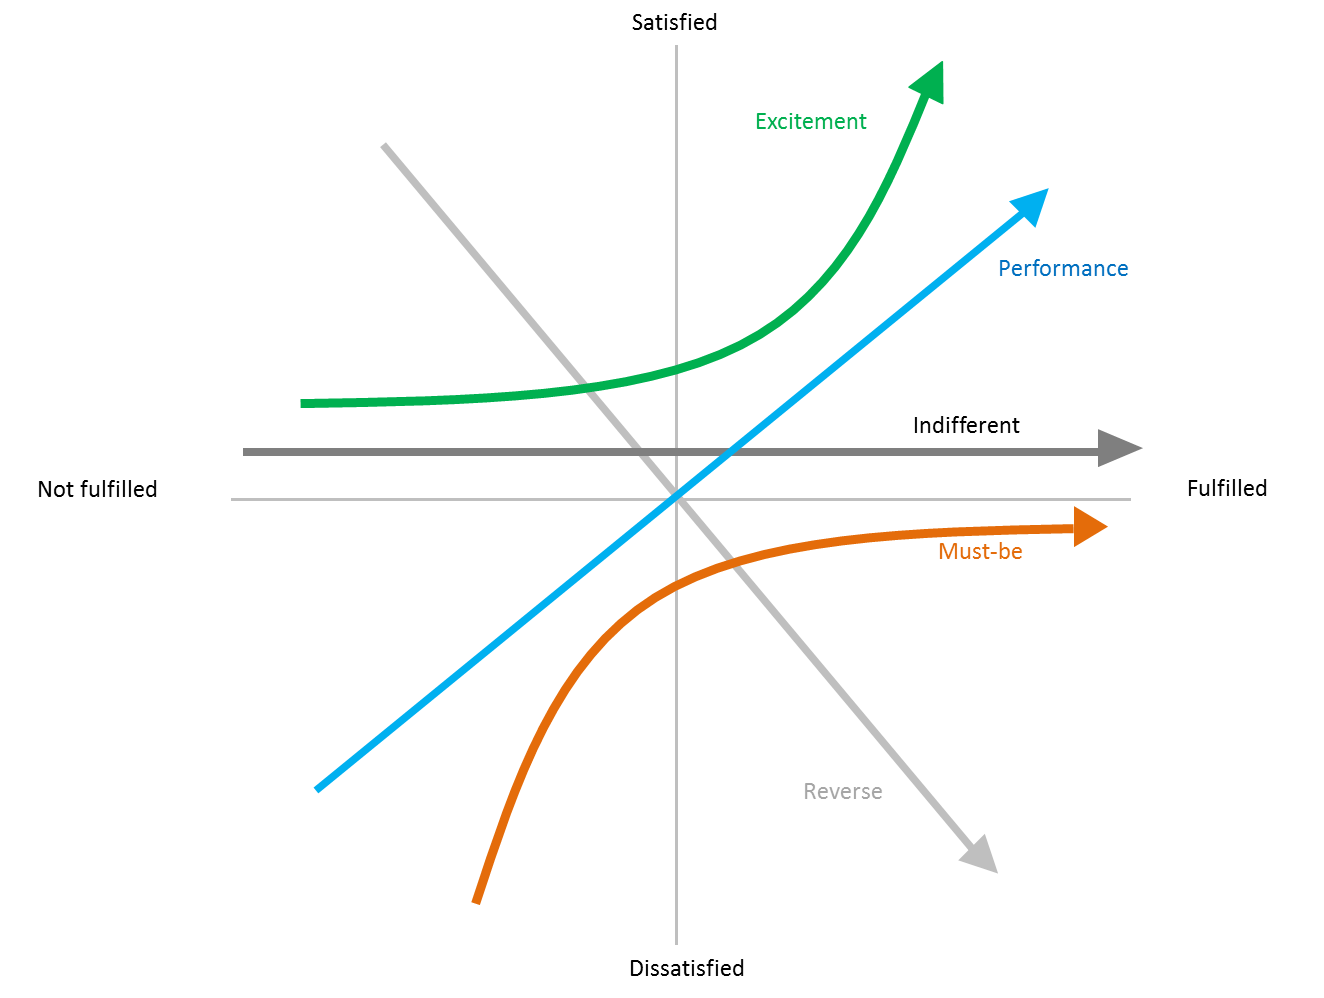 kano model pictures to pin on pinterest